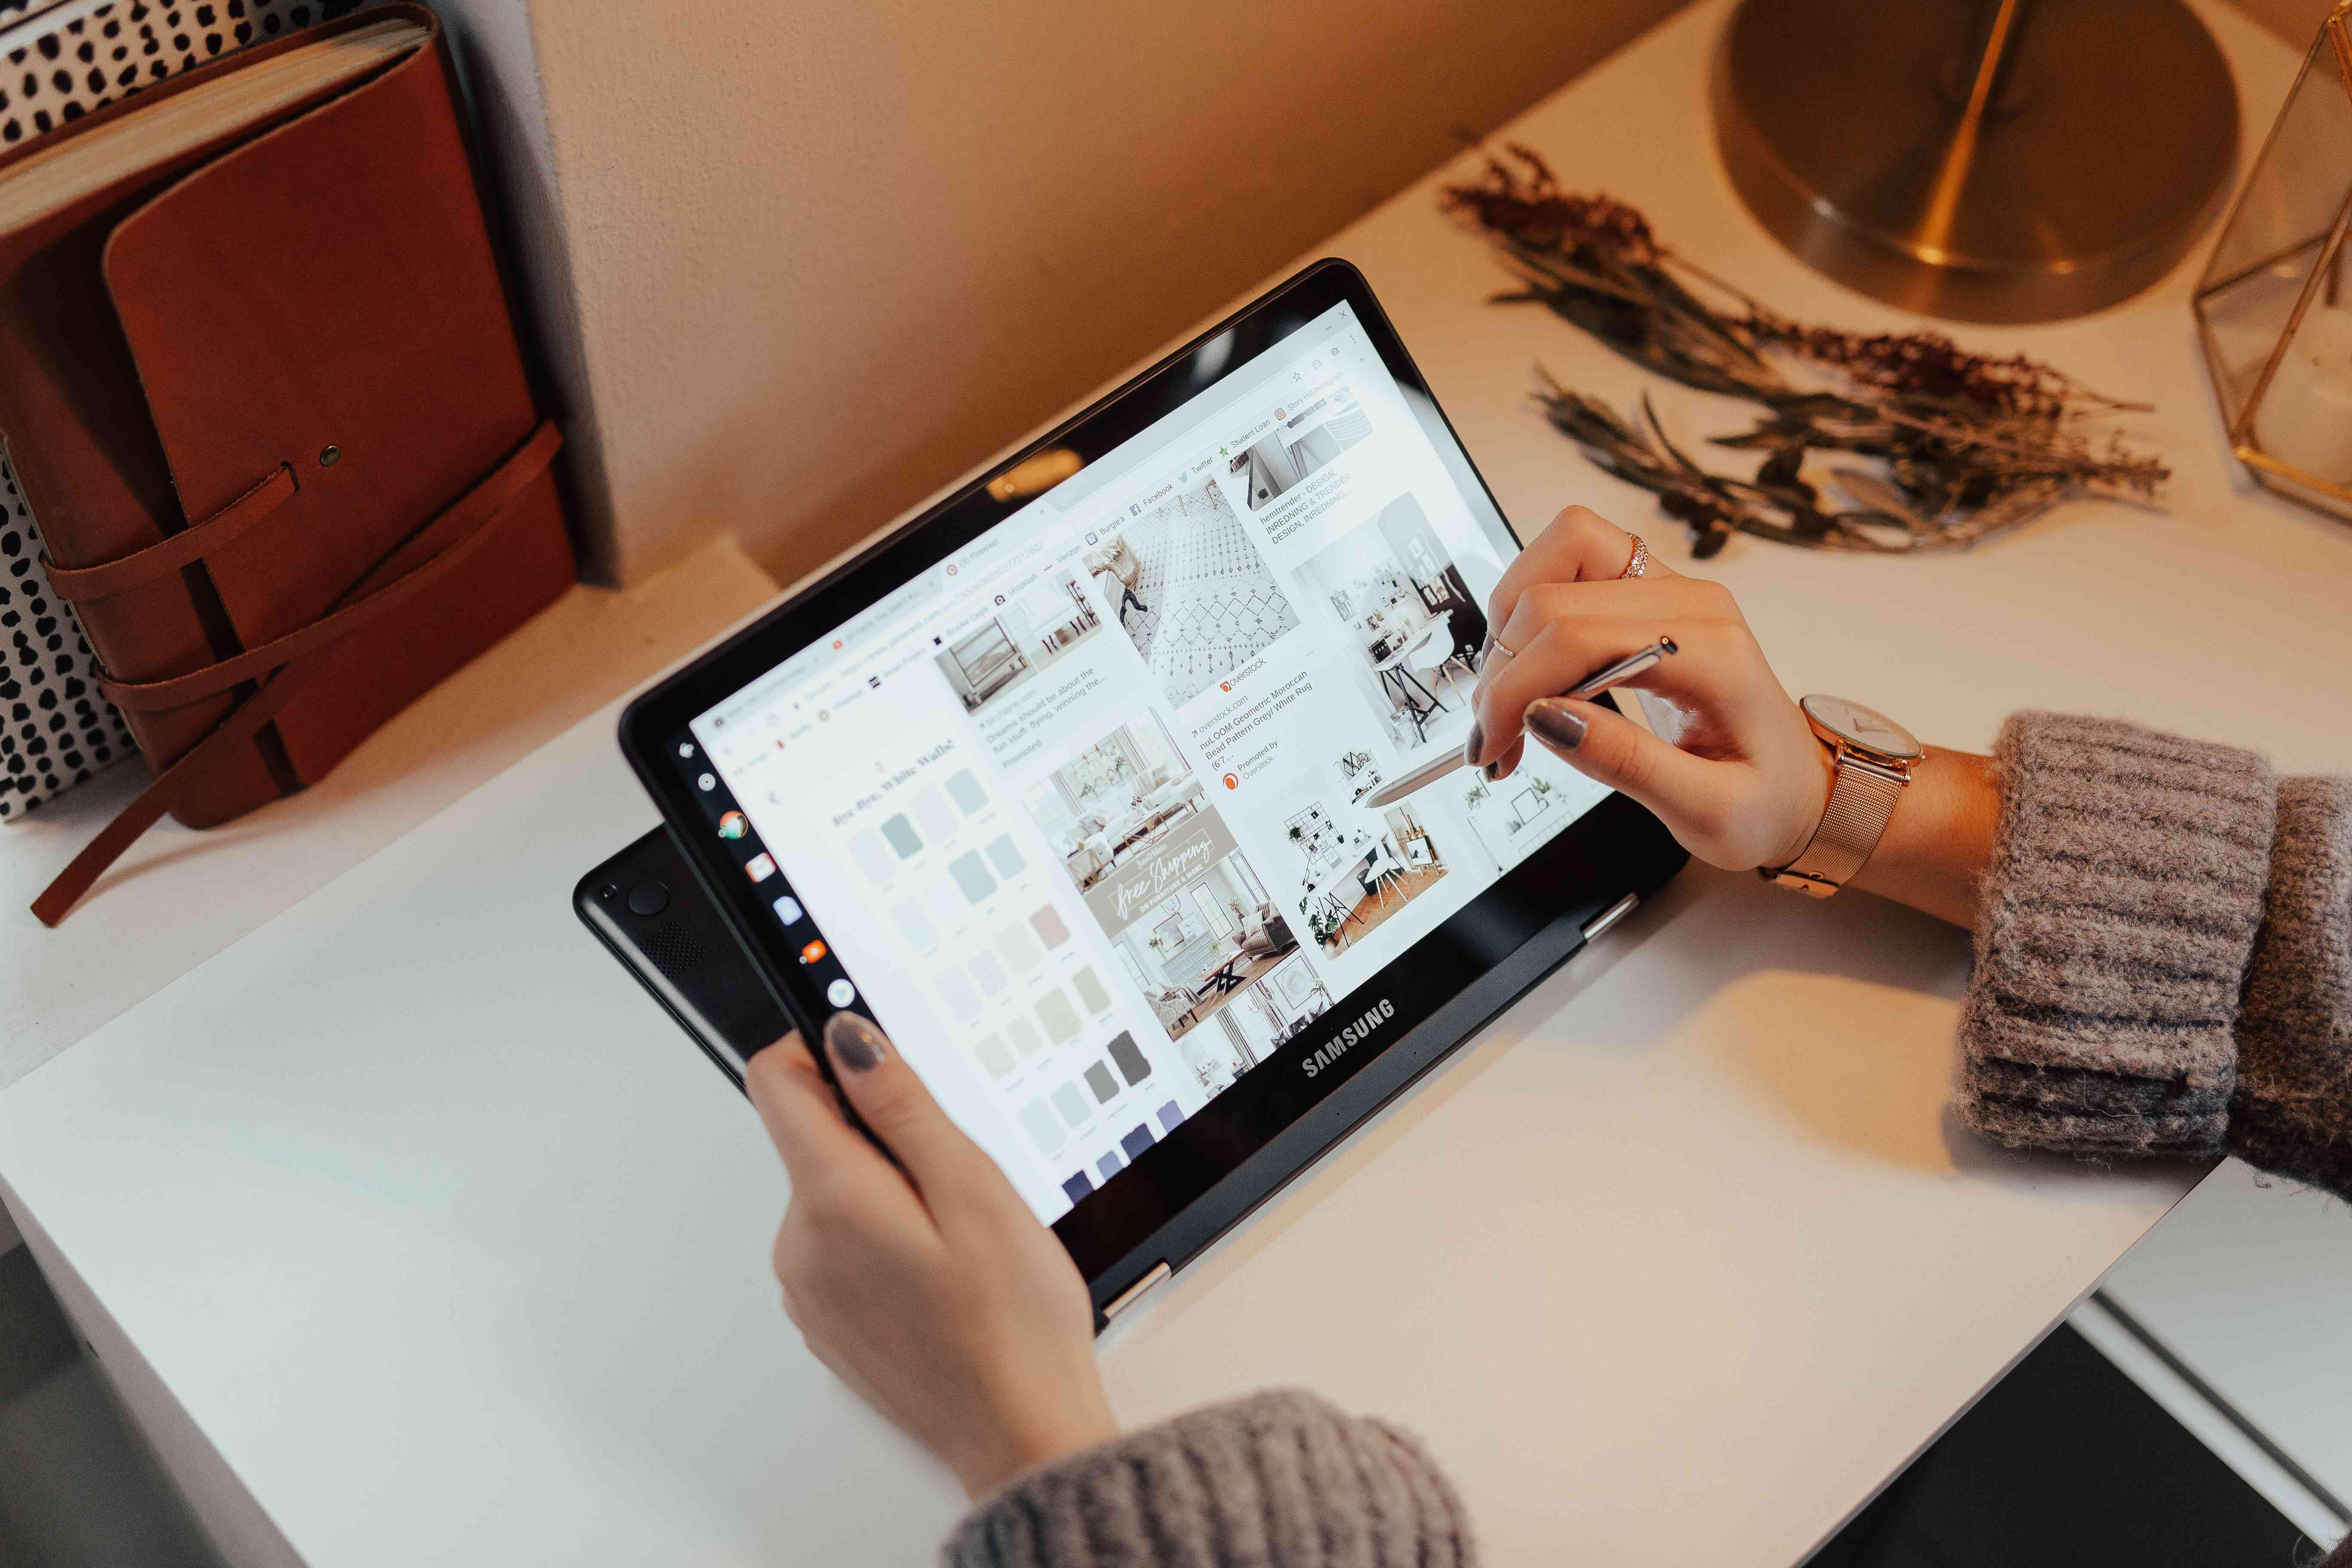 Someone using a Samsung Crombook with an S-Pen.